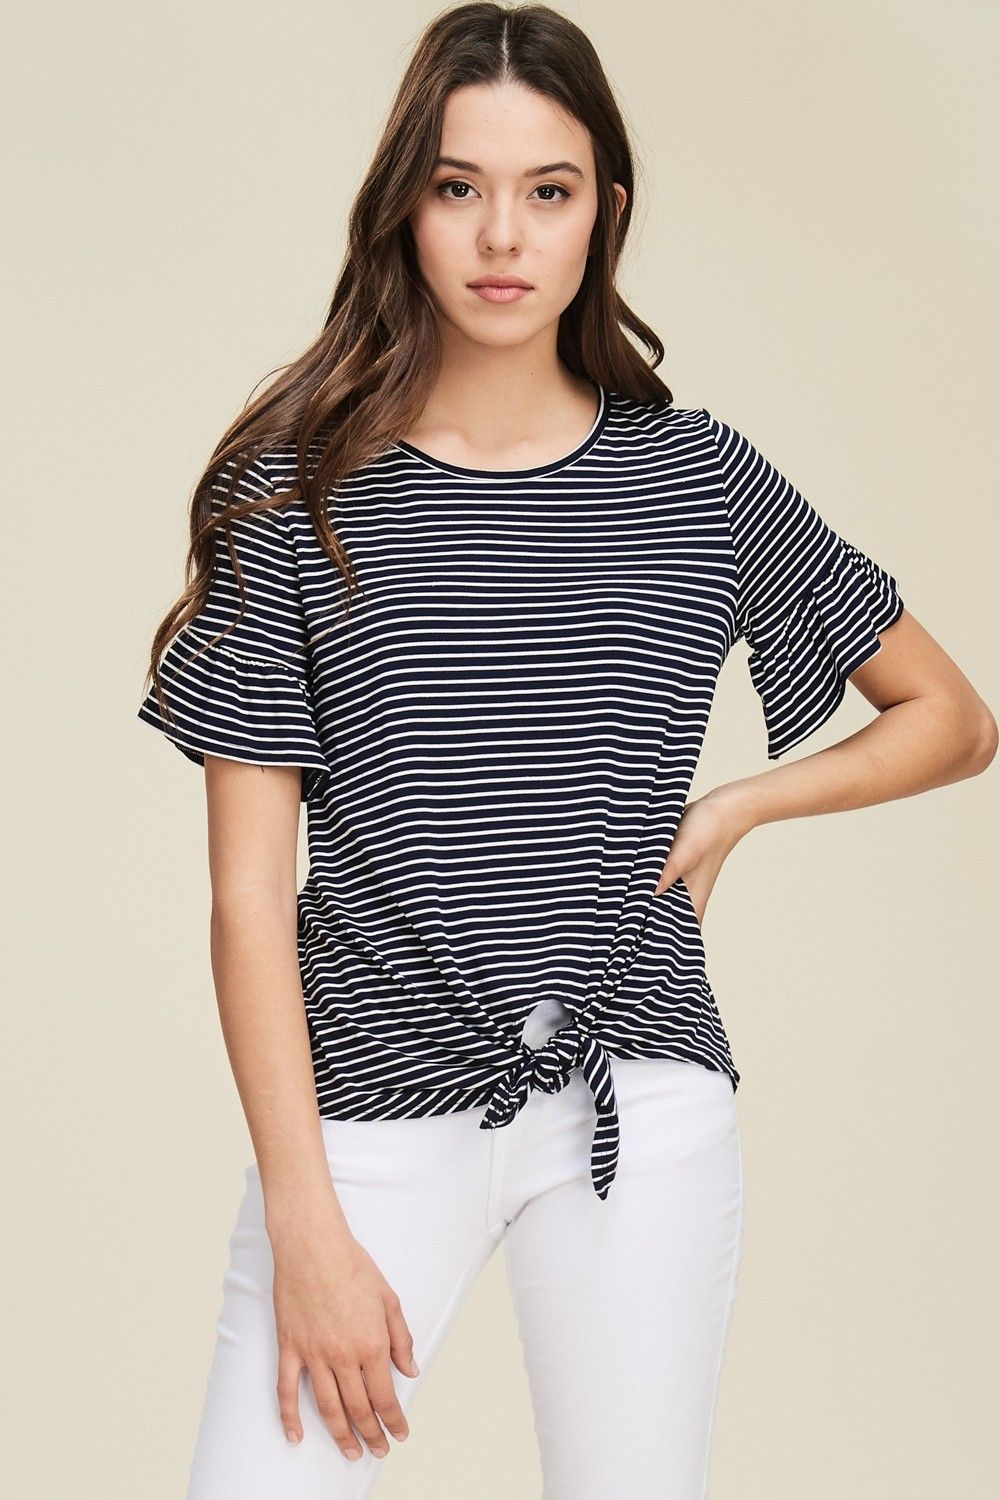 39d388243 Stripe Print Front Tie Top Style# T1243 Knit top featuring stripe print,  round neck, short bell sleeve, front tie, relaxed, soft and snug material.